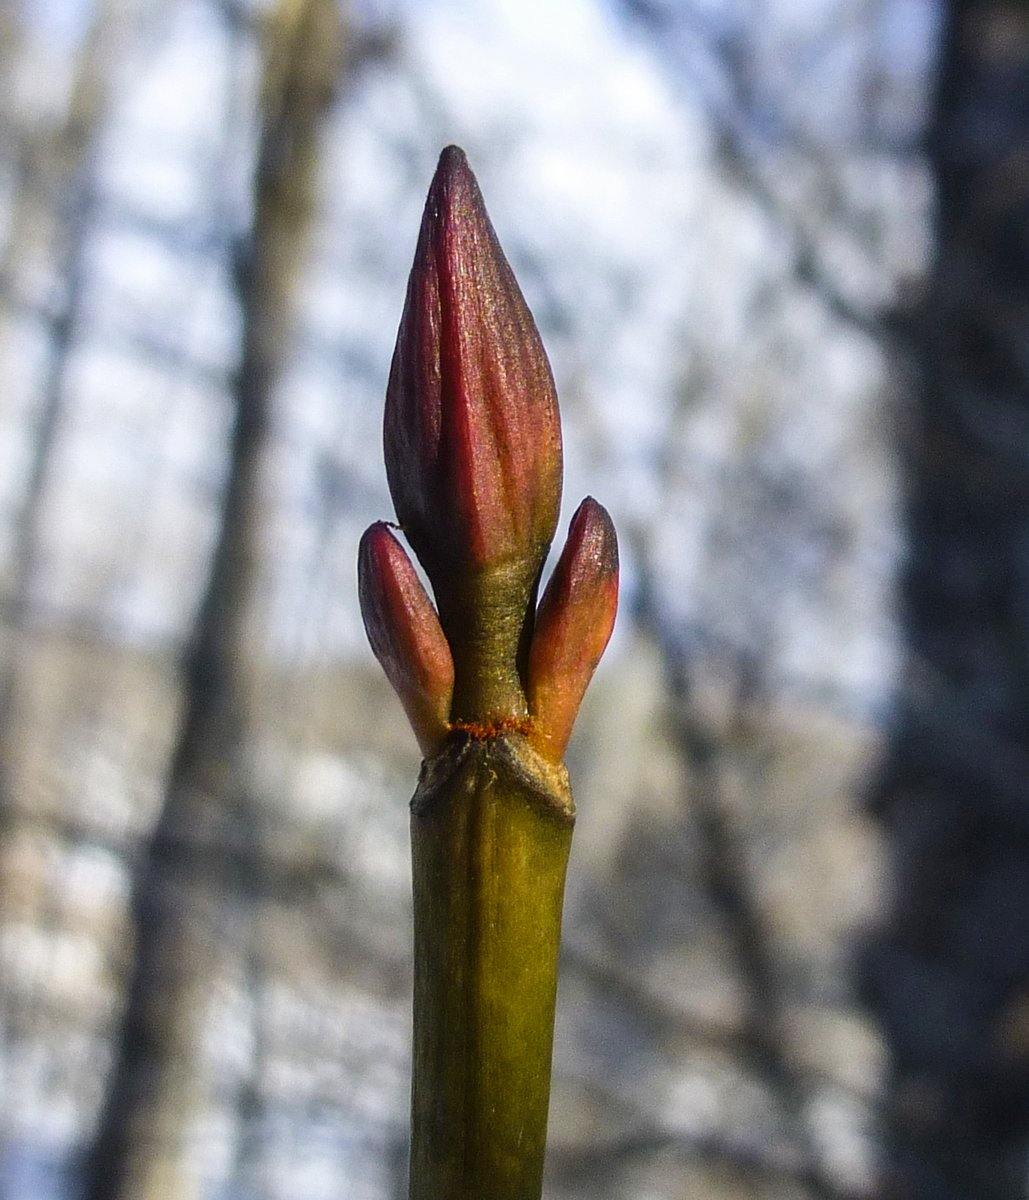 4. Striped Maple Buds